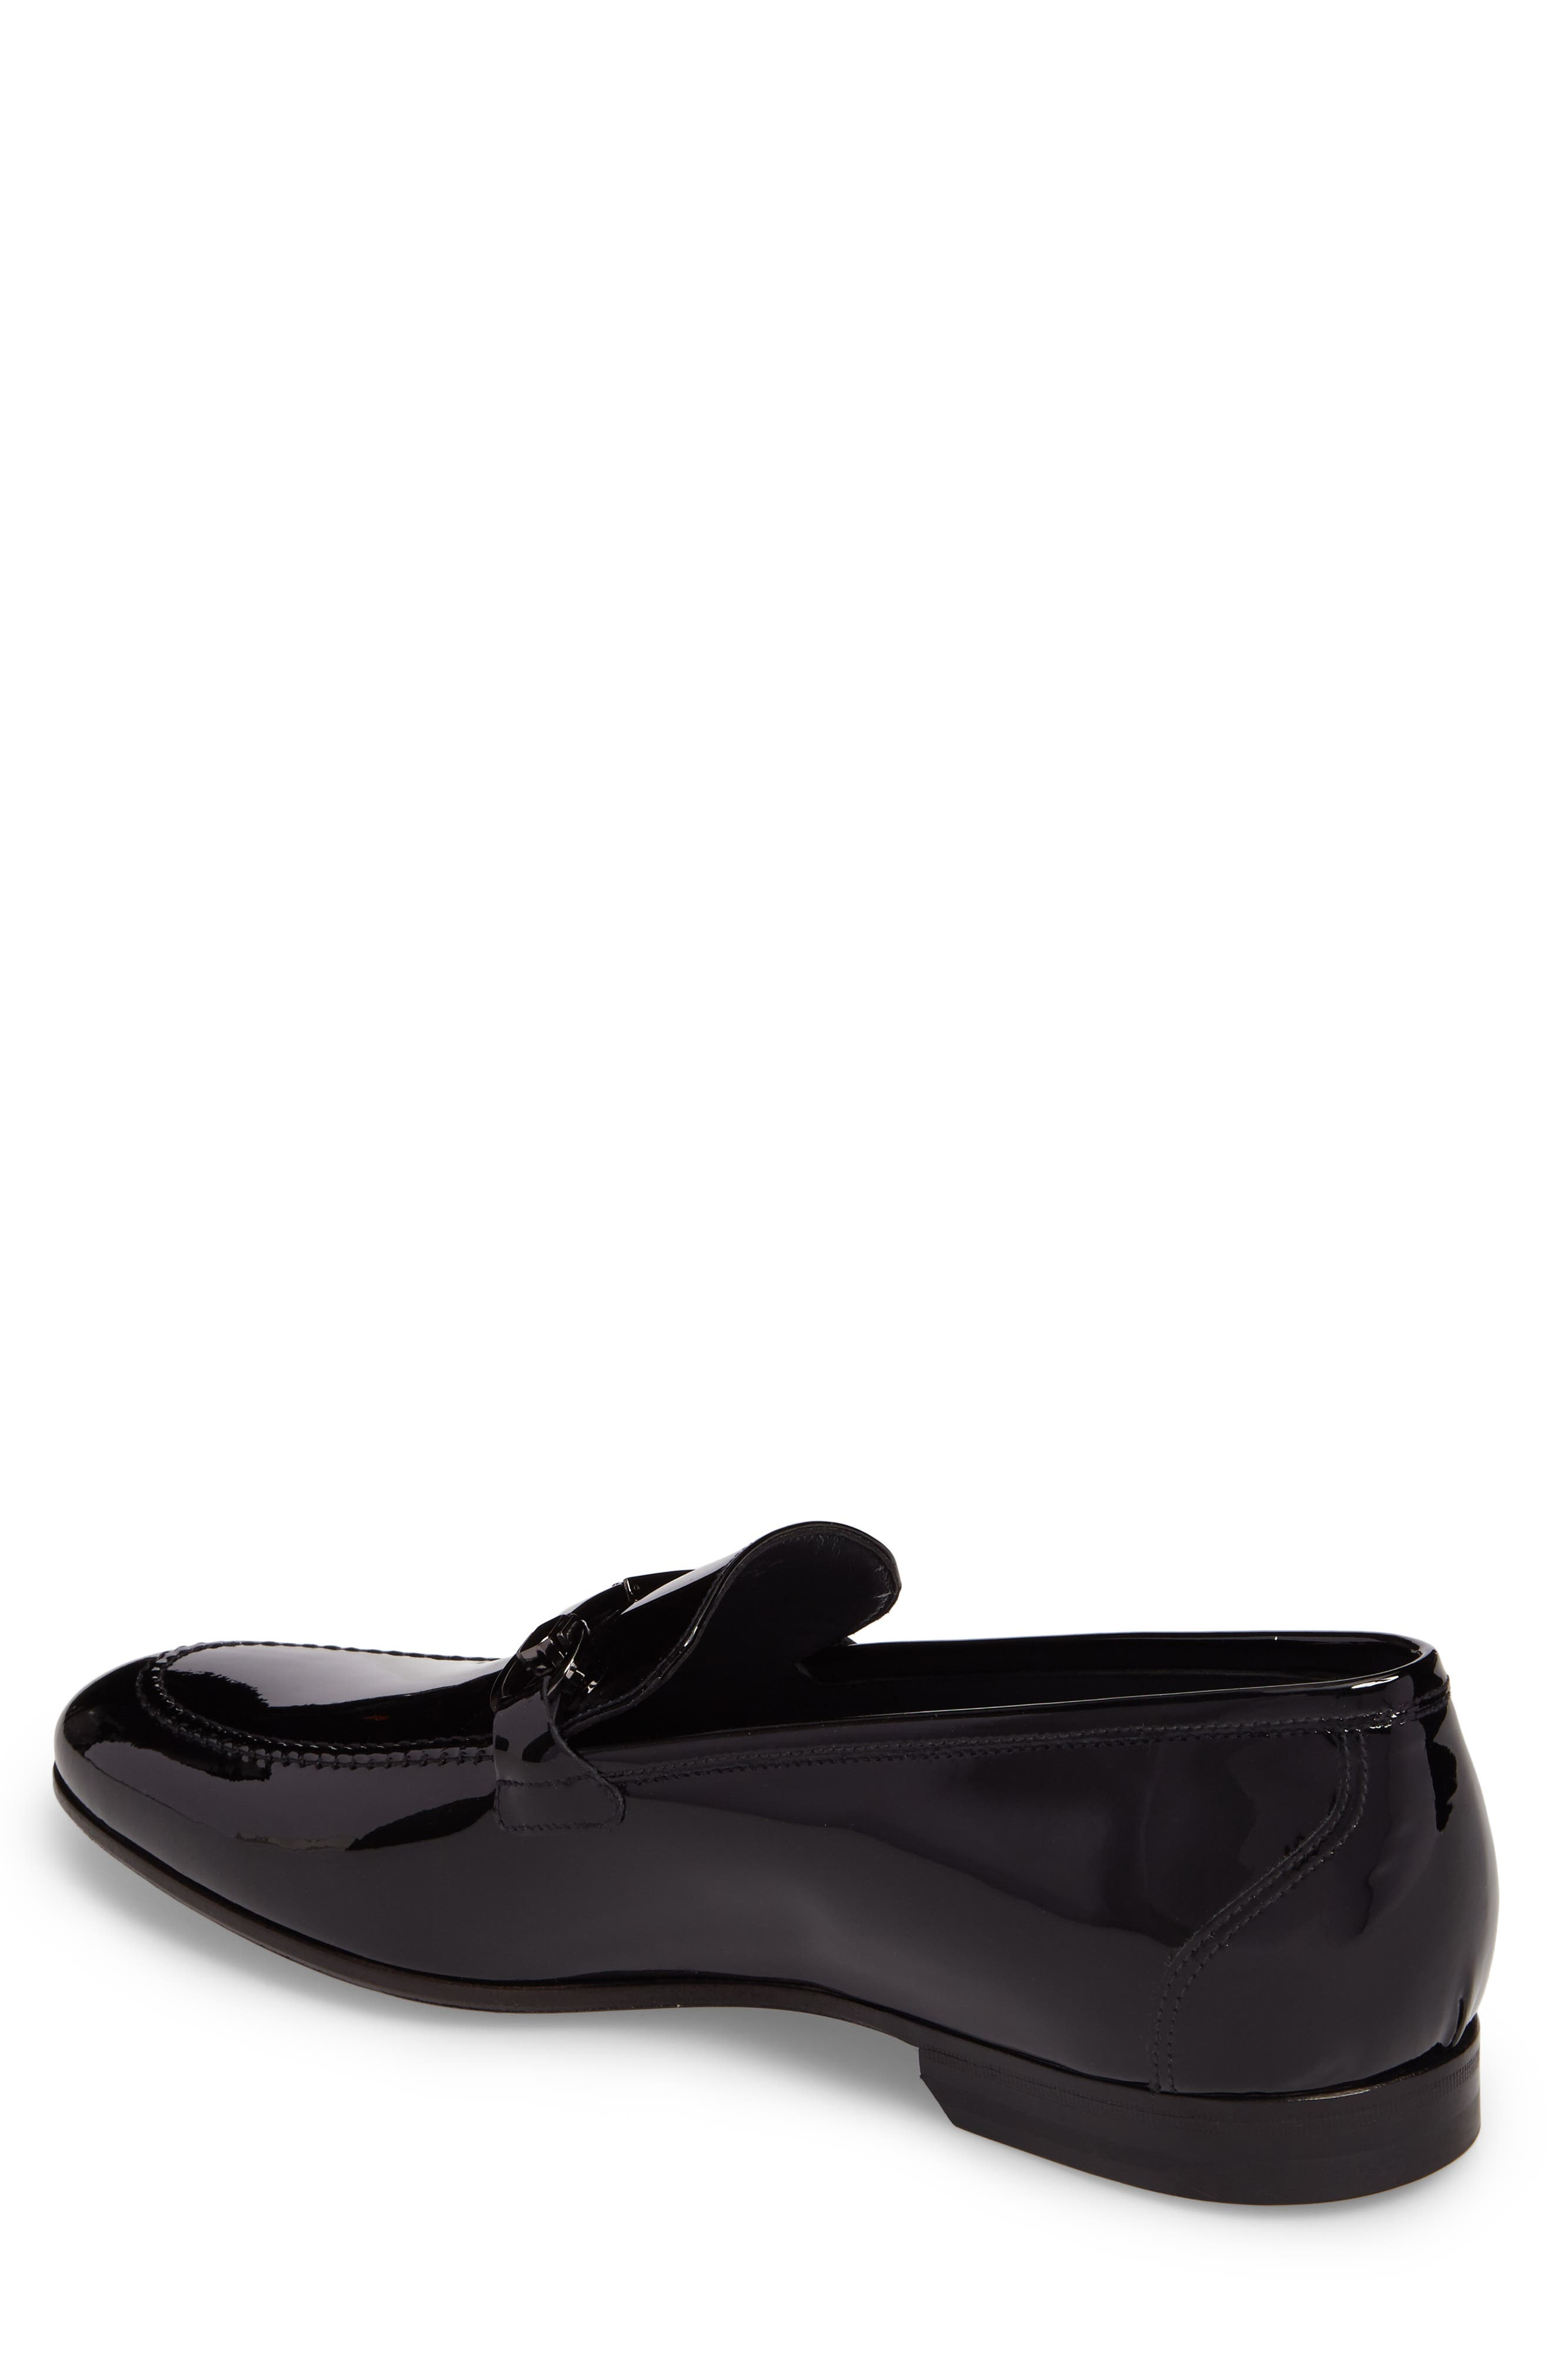 Brianza Bit Loafer,                             Alternate thumbnail 10, color,